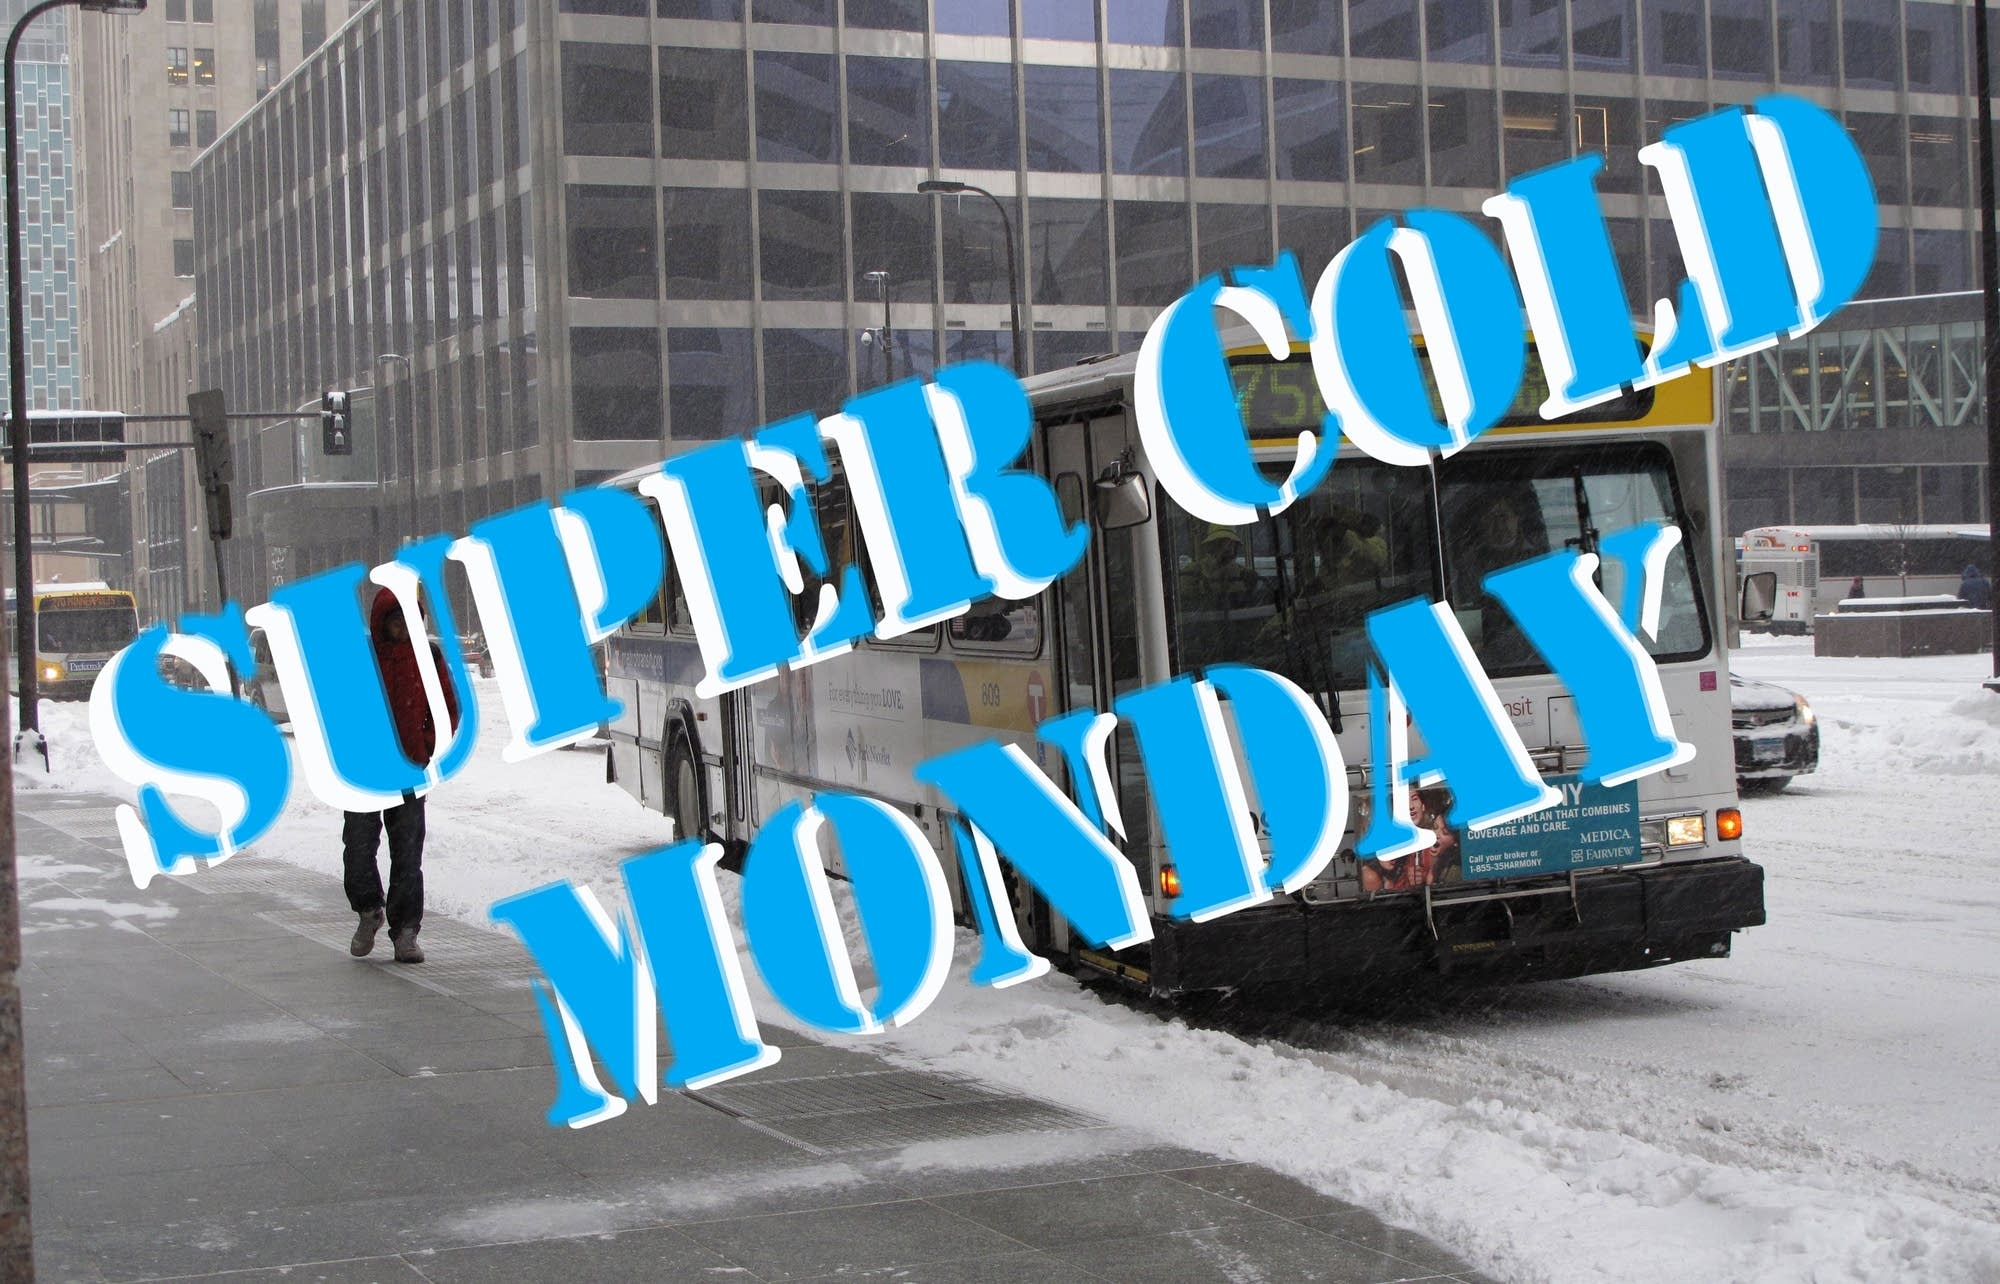 super cold monday